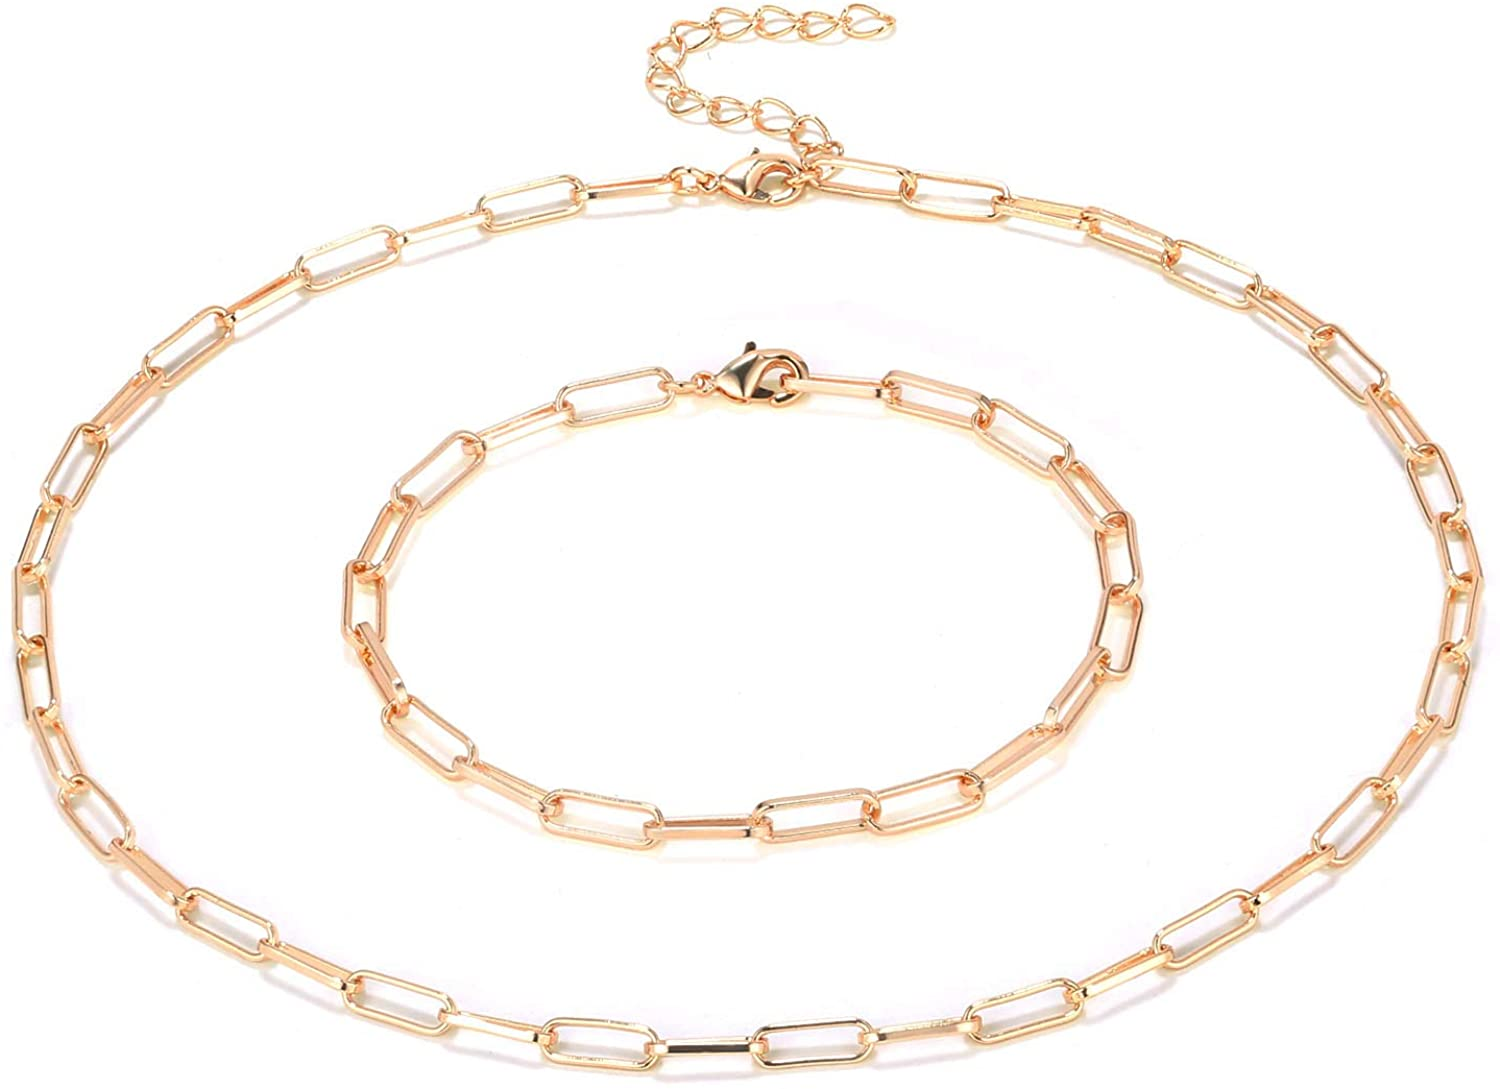 ALEXCRAFT 14K Gold Plated Paperclip Chain Link Choker Necklace for Women Girls